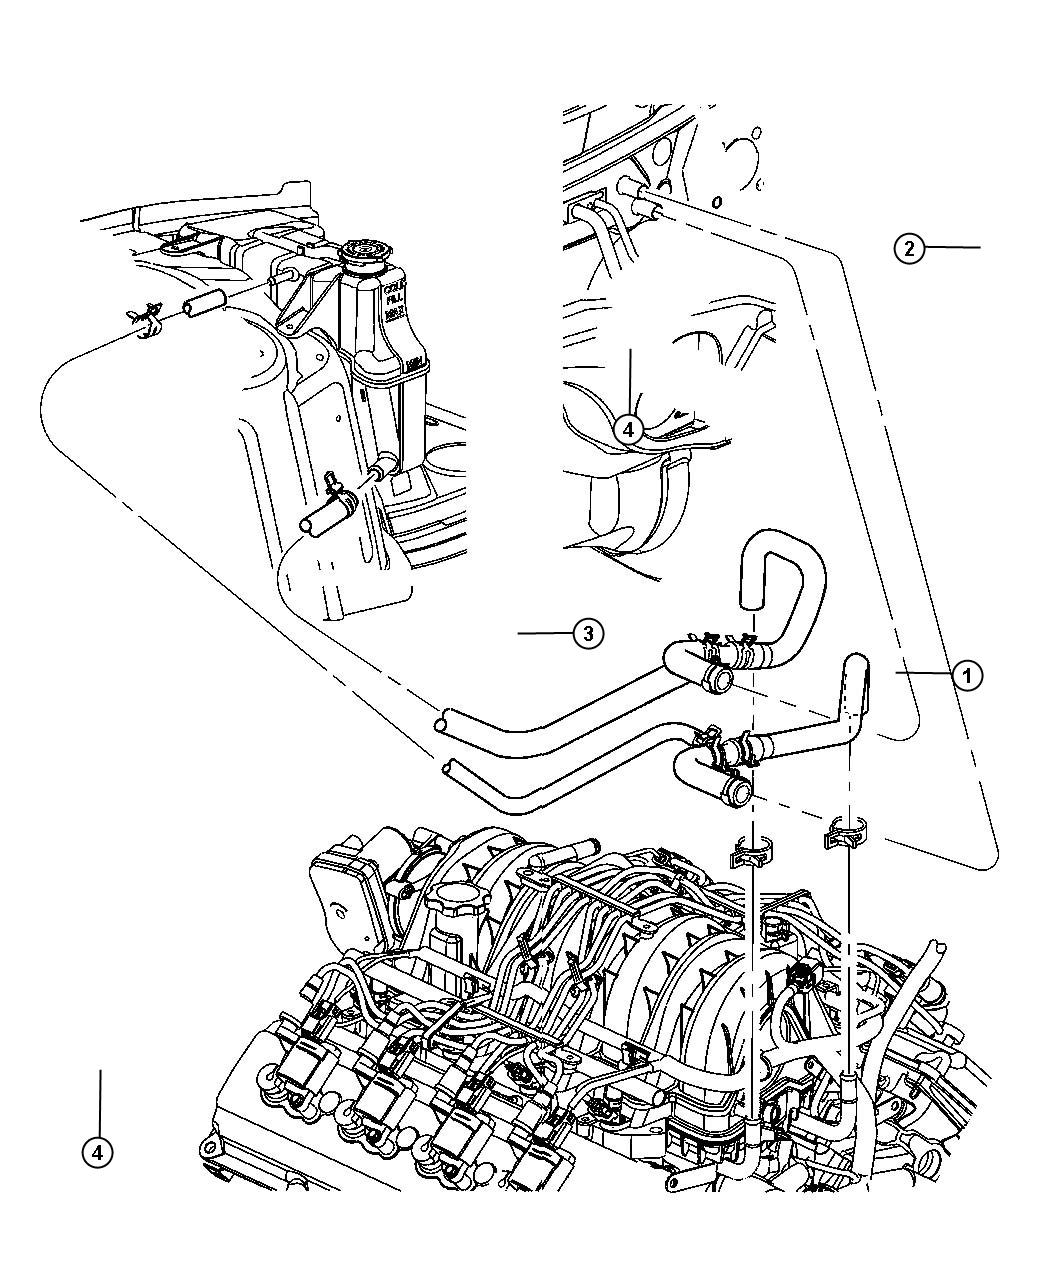 1996 Dodge Grand Caravan Engine Diagram FULL HD Quality